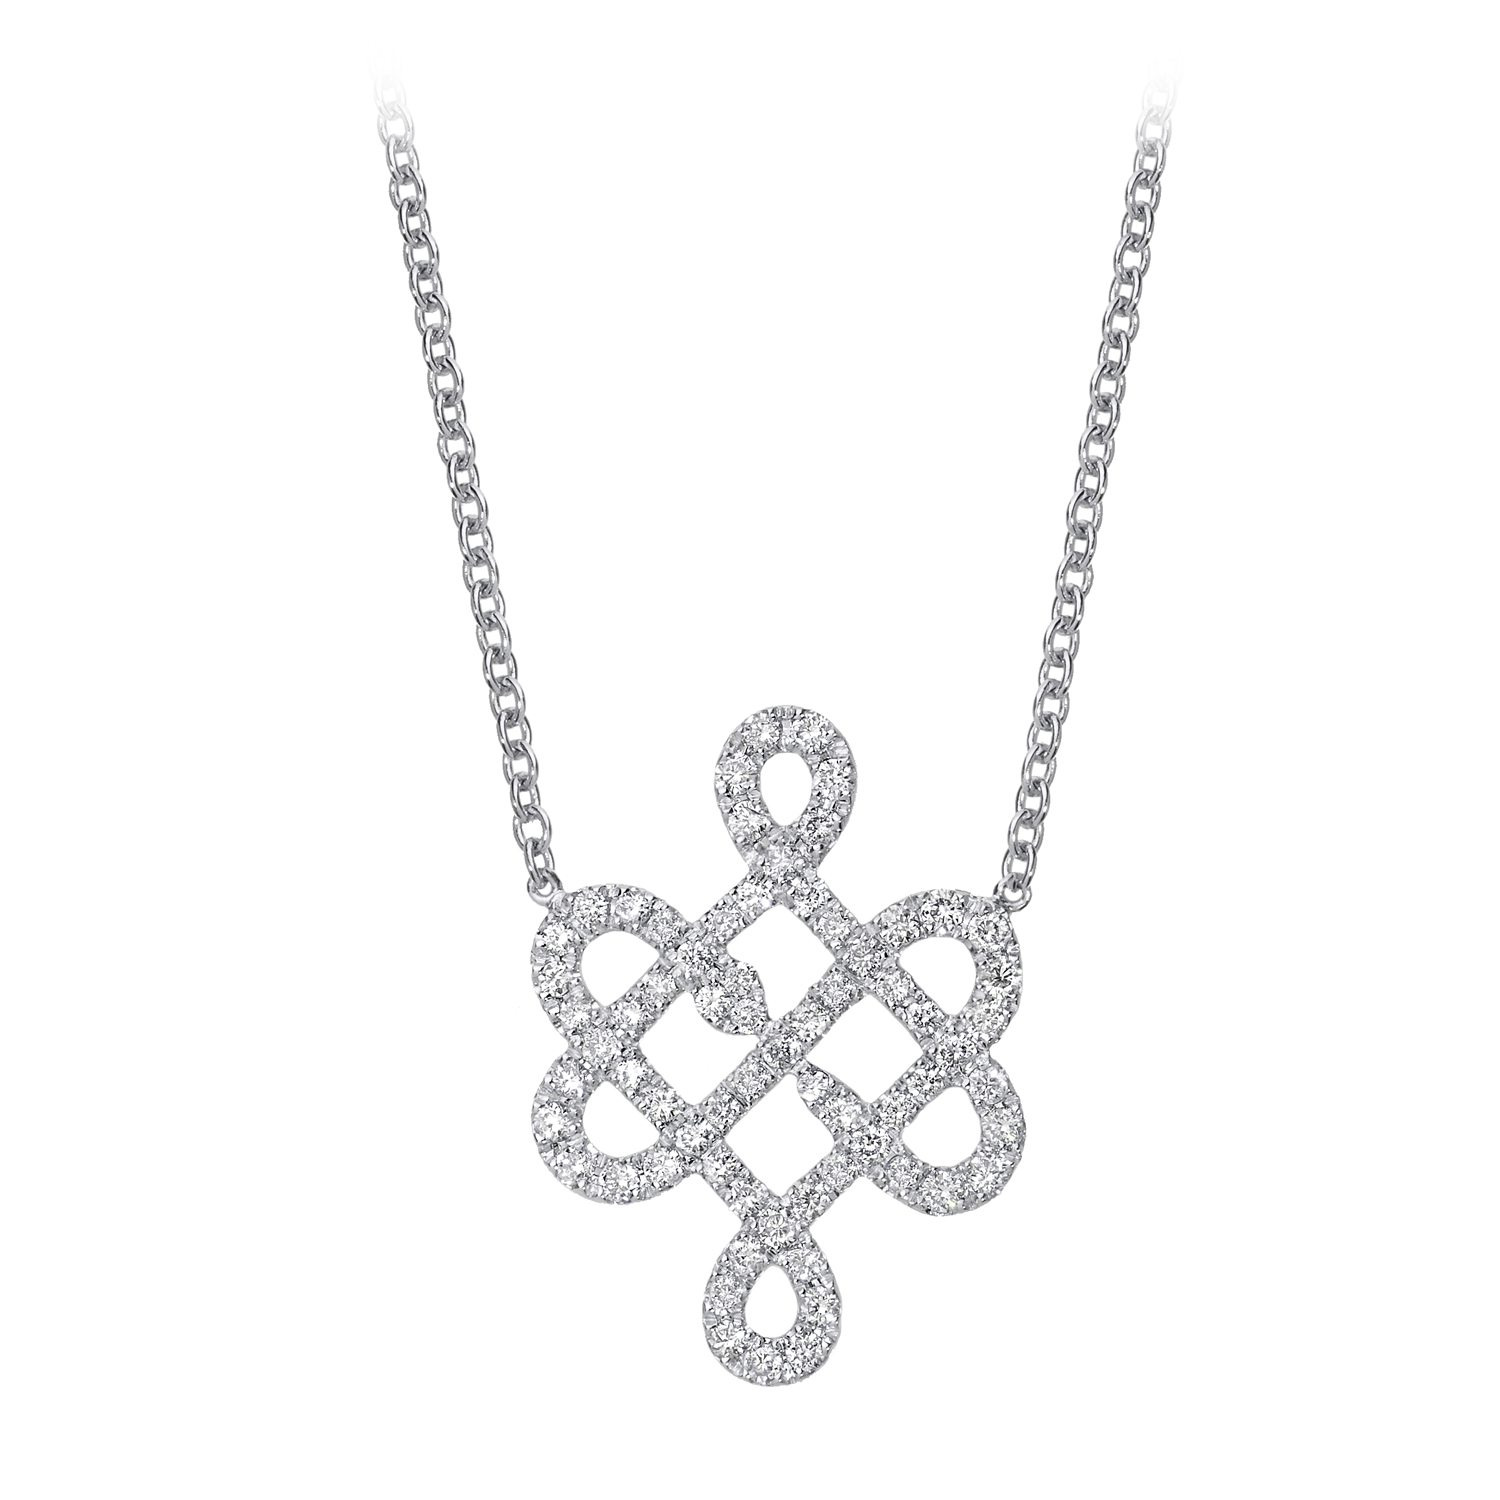 Collier en or 18 k pavé de diamants